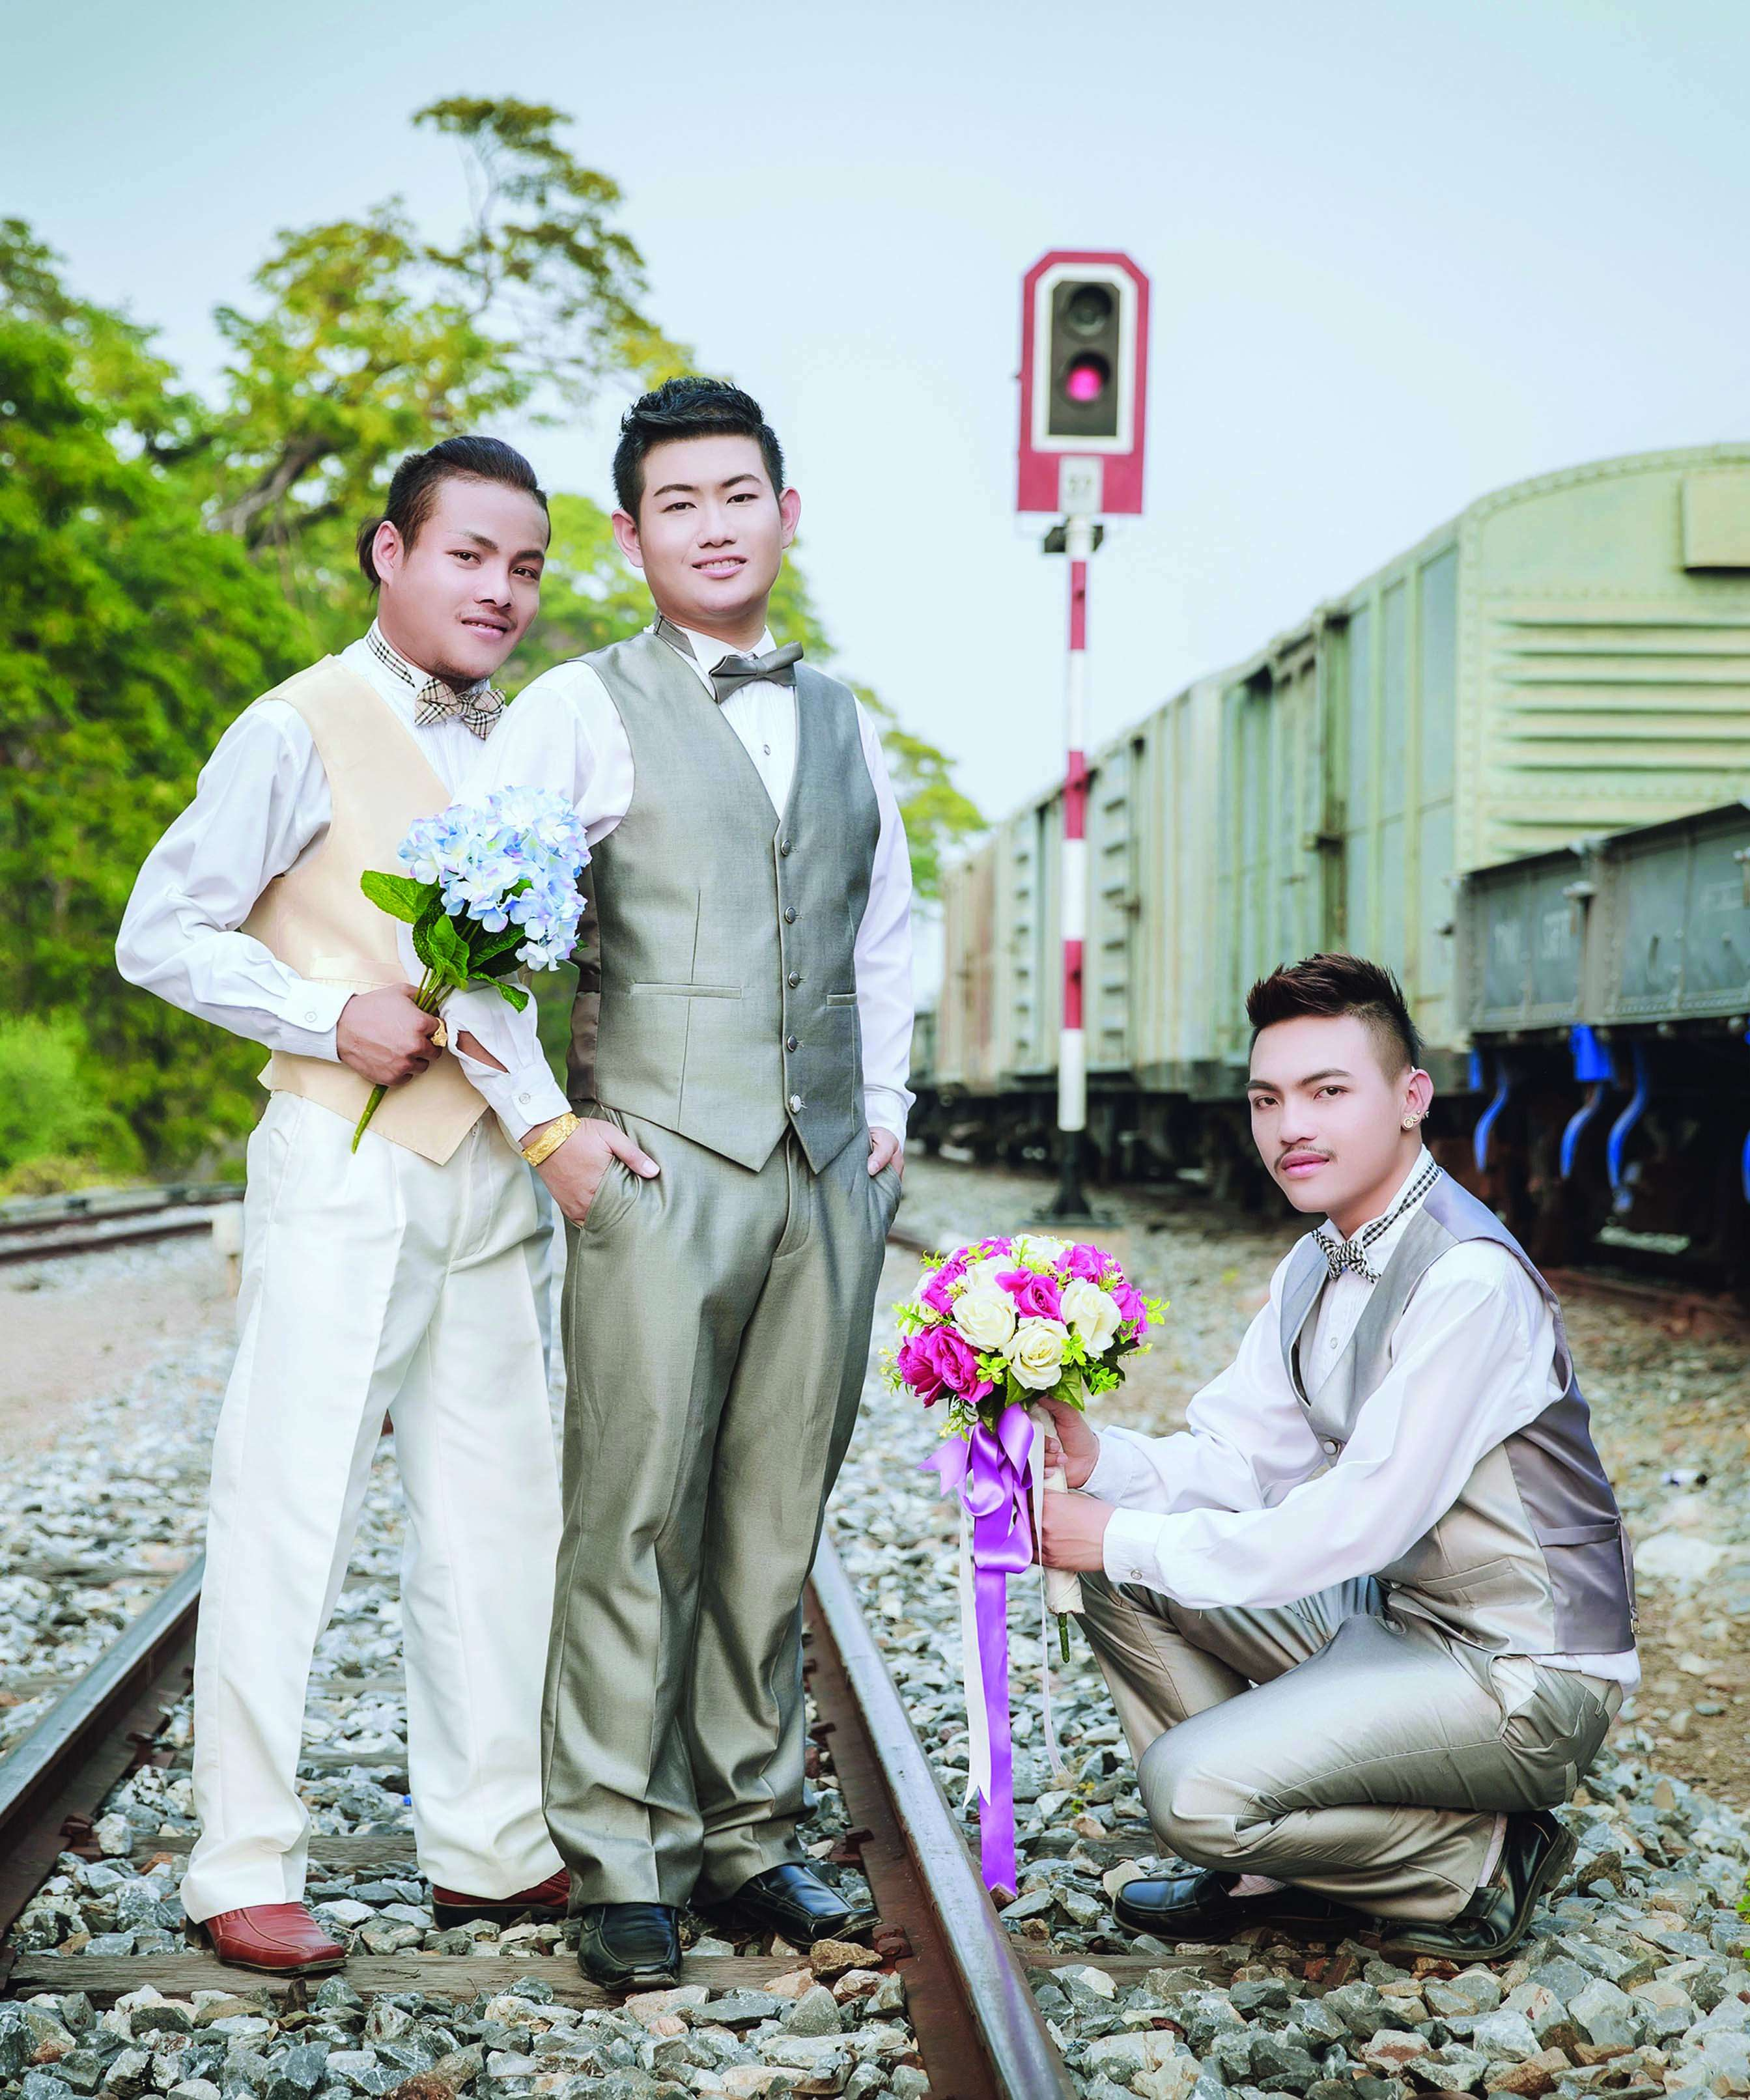 Three gay men marry in Thailand